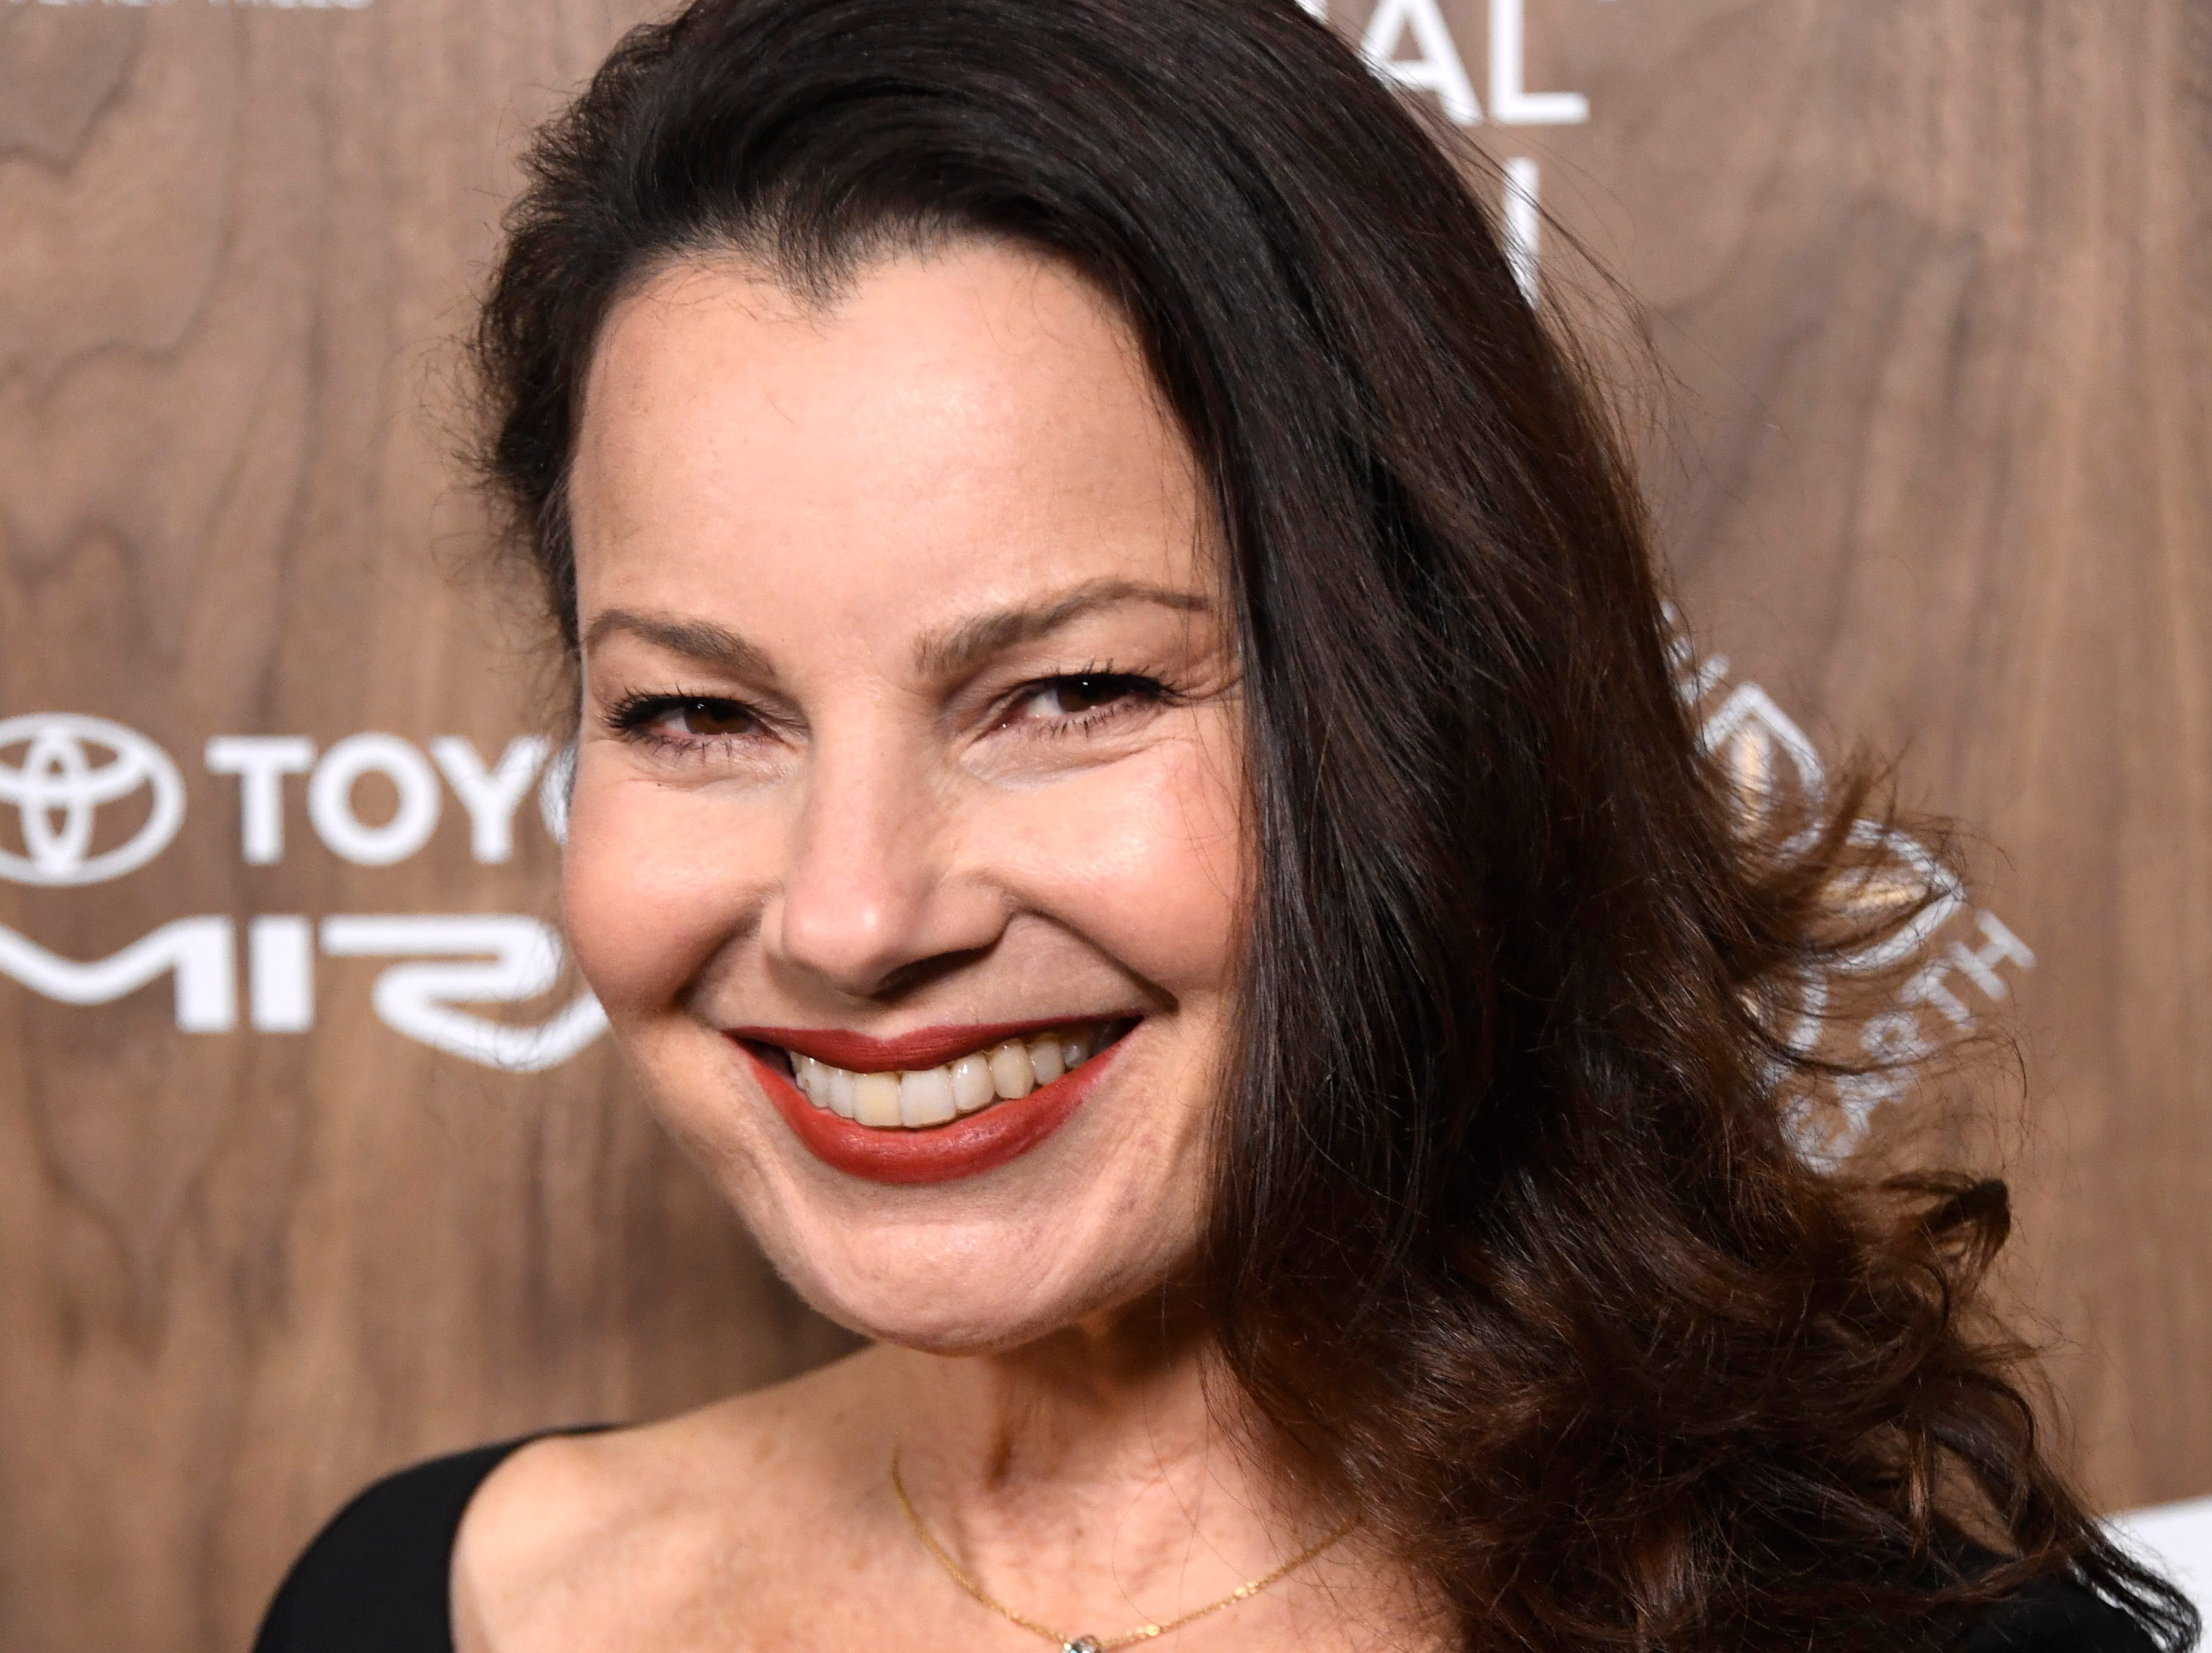 LOS ANGELES, CALIFORNIA - FEBRUARY 20: Fran Drescher attends the Global Green 2019 Pre-Oscar Gala  at Four Seasons Hotel Los Angeles at Beverly Hills on February 20, 2019 in Los Angeles, California. (Photo by Frazer Harrison/Getty Images) ORG XMIT: 775298110 ORIG FILE ID: 1131070504